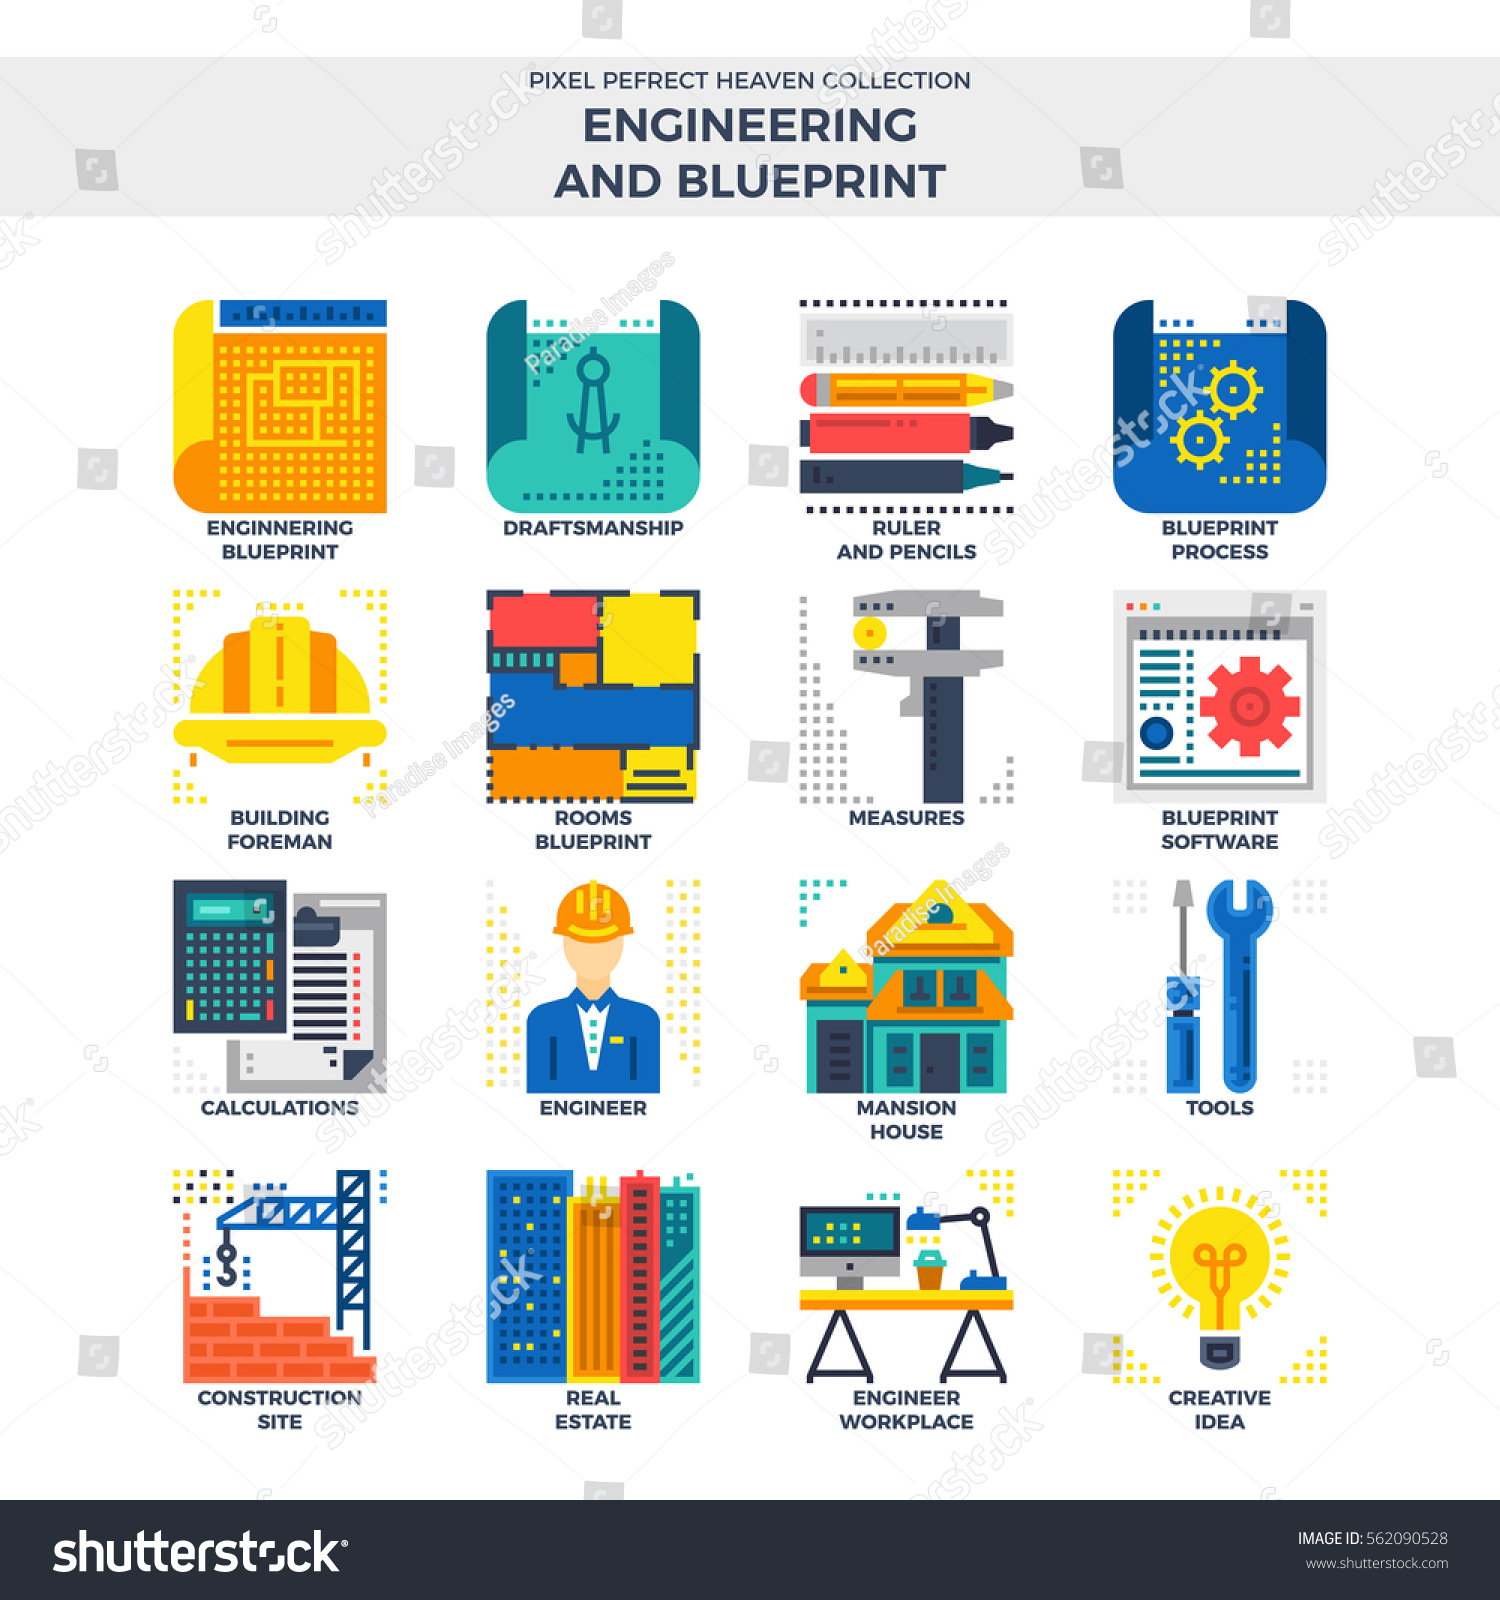 Engineering blueprint flat icon set material vectores en stock engineering and blueprint flat icon set material design illustration concept high quality pixel perfect malvernweather Image collections